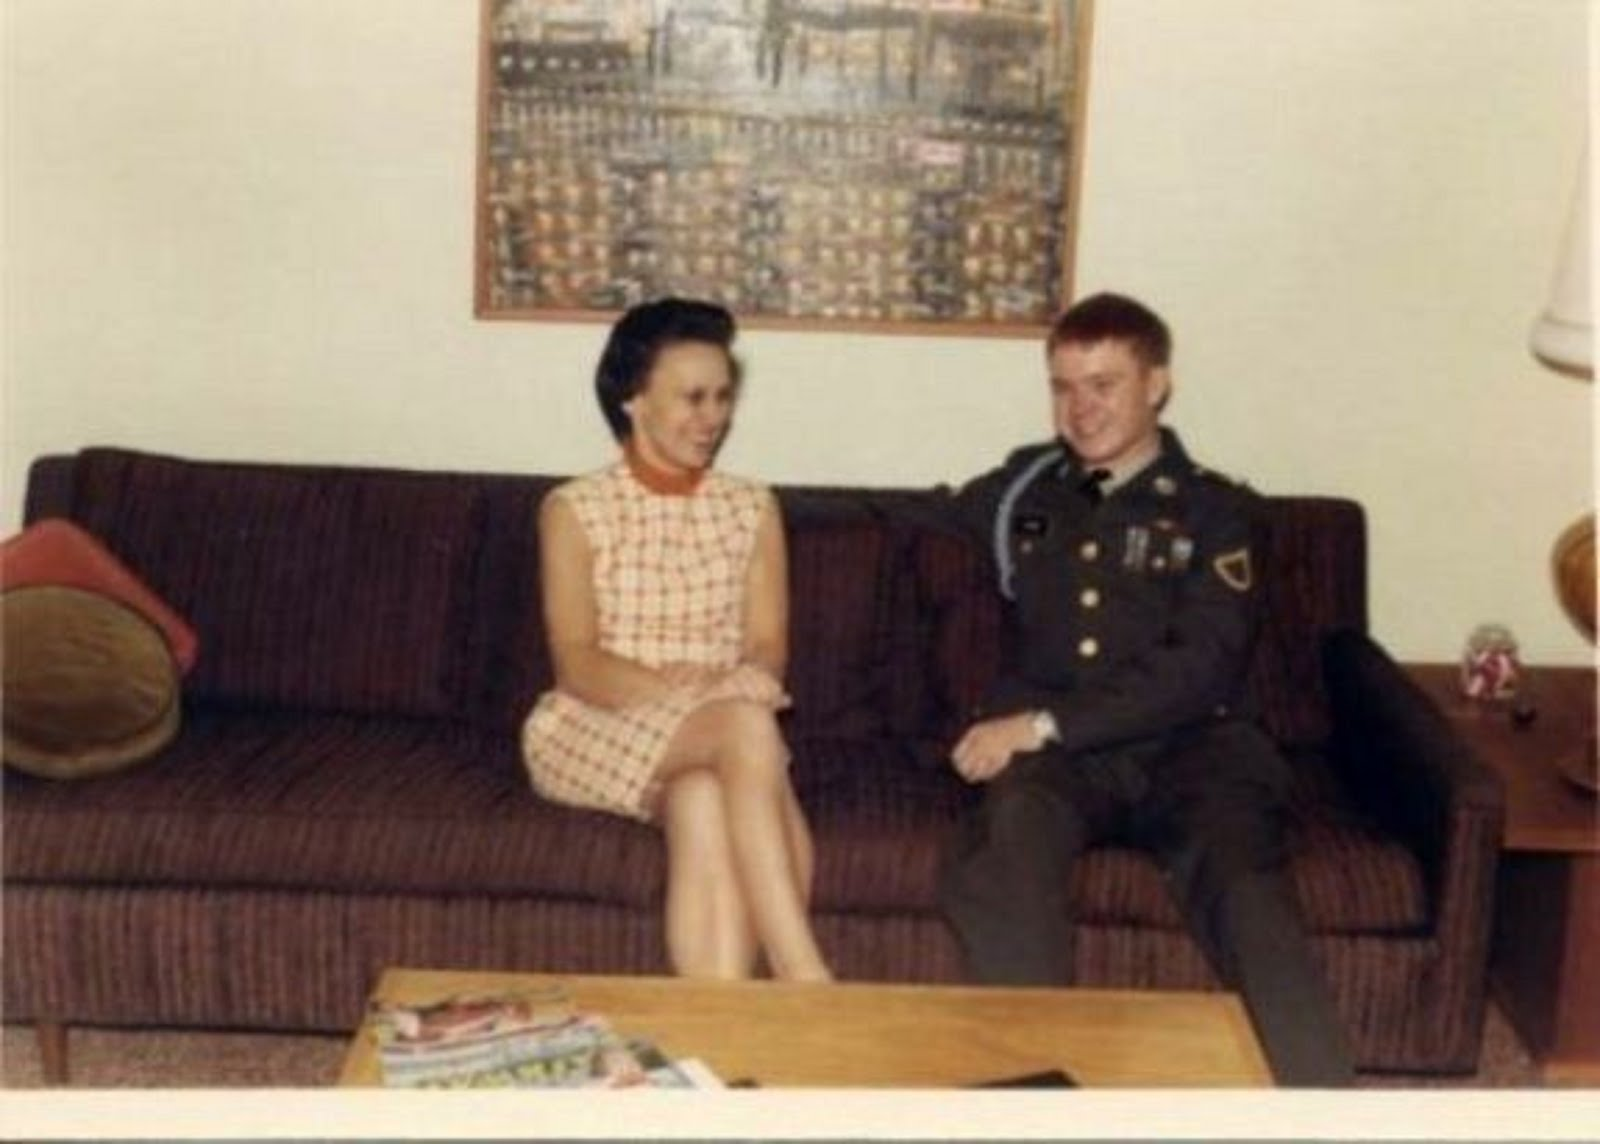 MY MOM IRENE V. PAYNE WITH ME PFC GREG PAYNE ON IN UNIFORM AND ON MY WAY TO VIETNAM - JAN 19, 1969